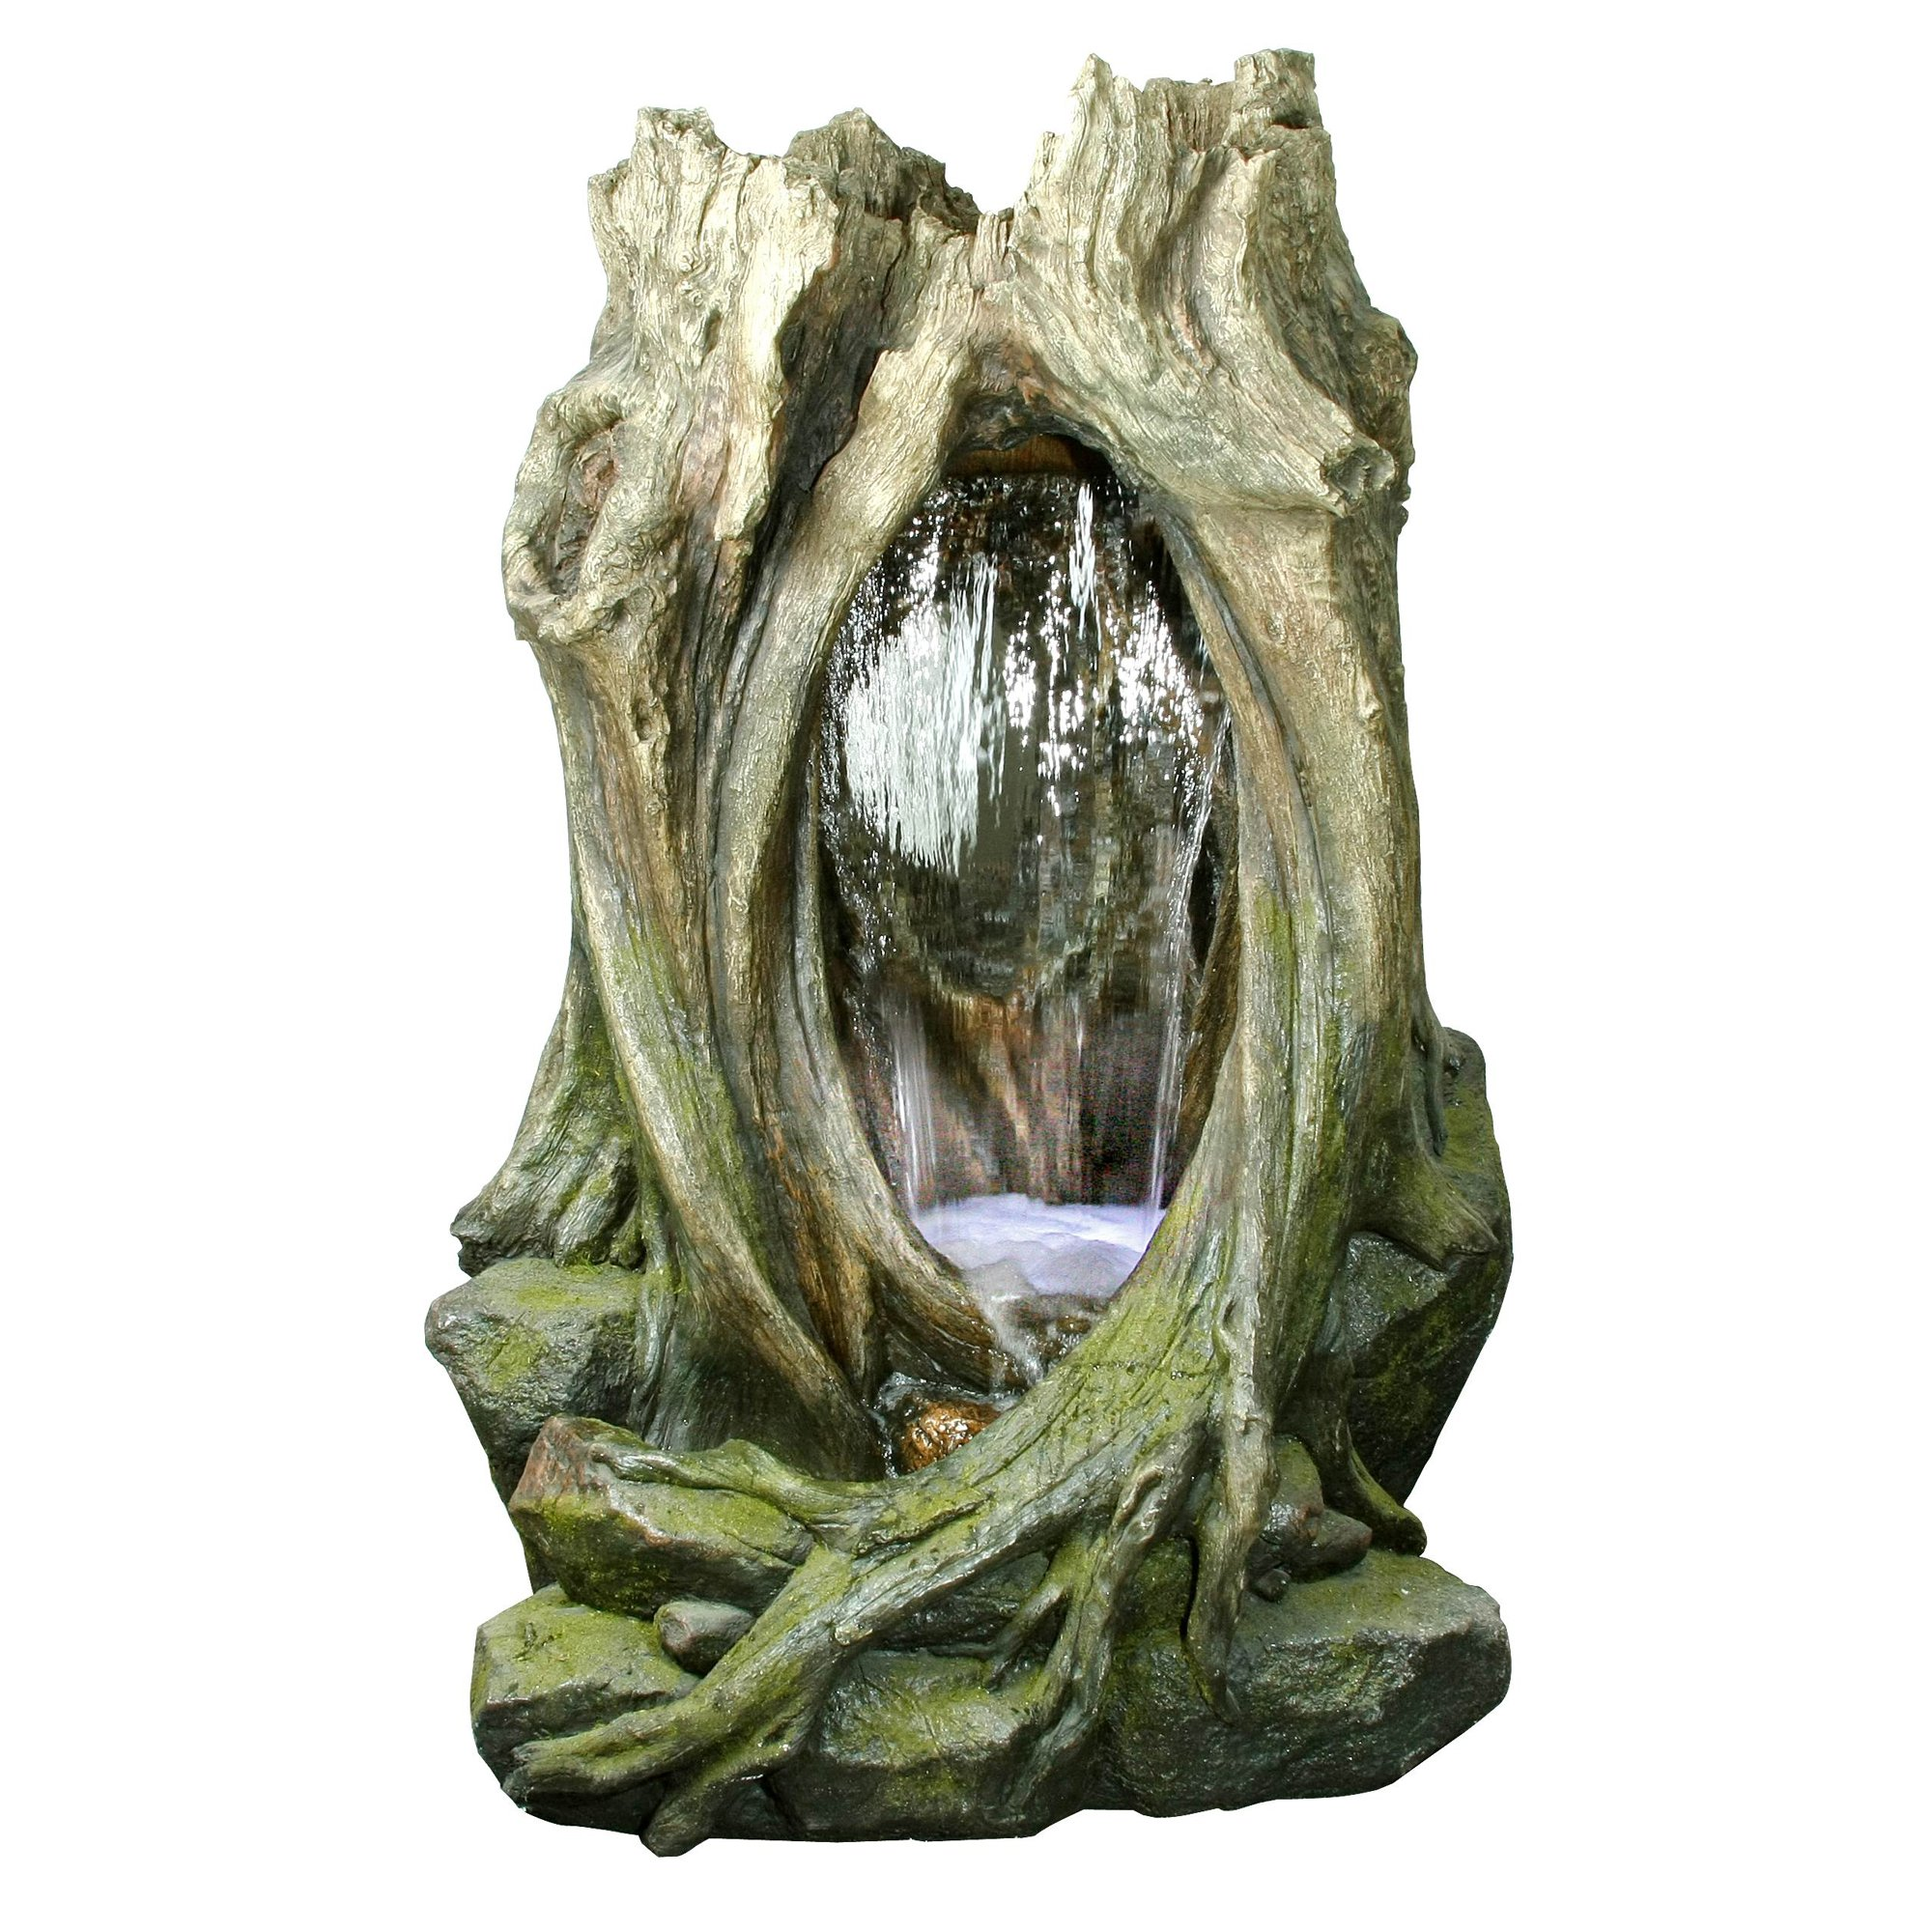 Yosemite Home Decor CW09031 Tall Rain Forest Tree Stump and Rock Base Fountain with LED Lighting